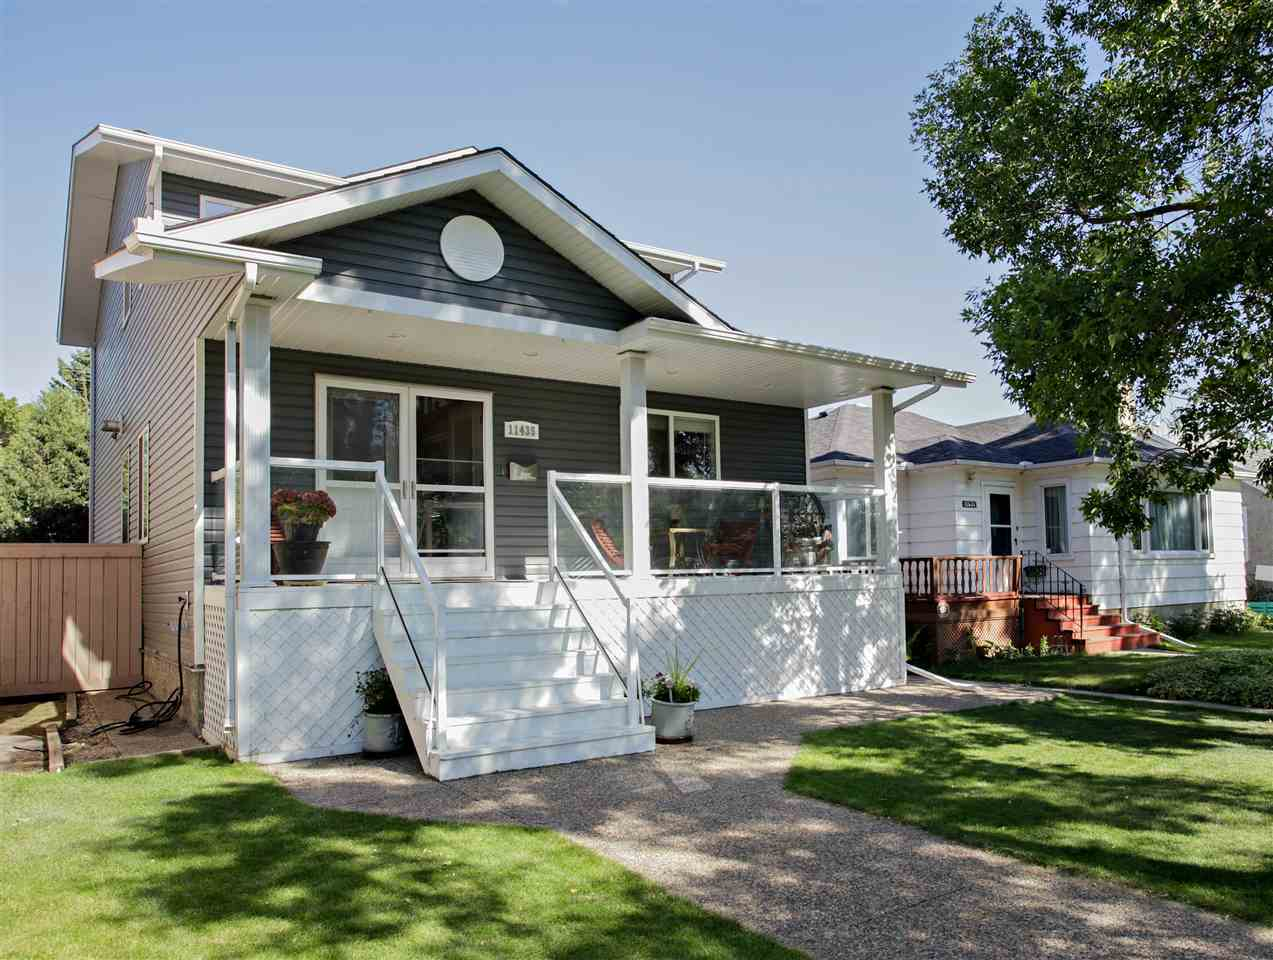 Main Photo: 11435 67 Street in Edmonton: Zone 09 House for sale : MLS® # E4079068